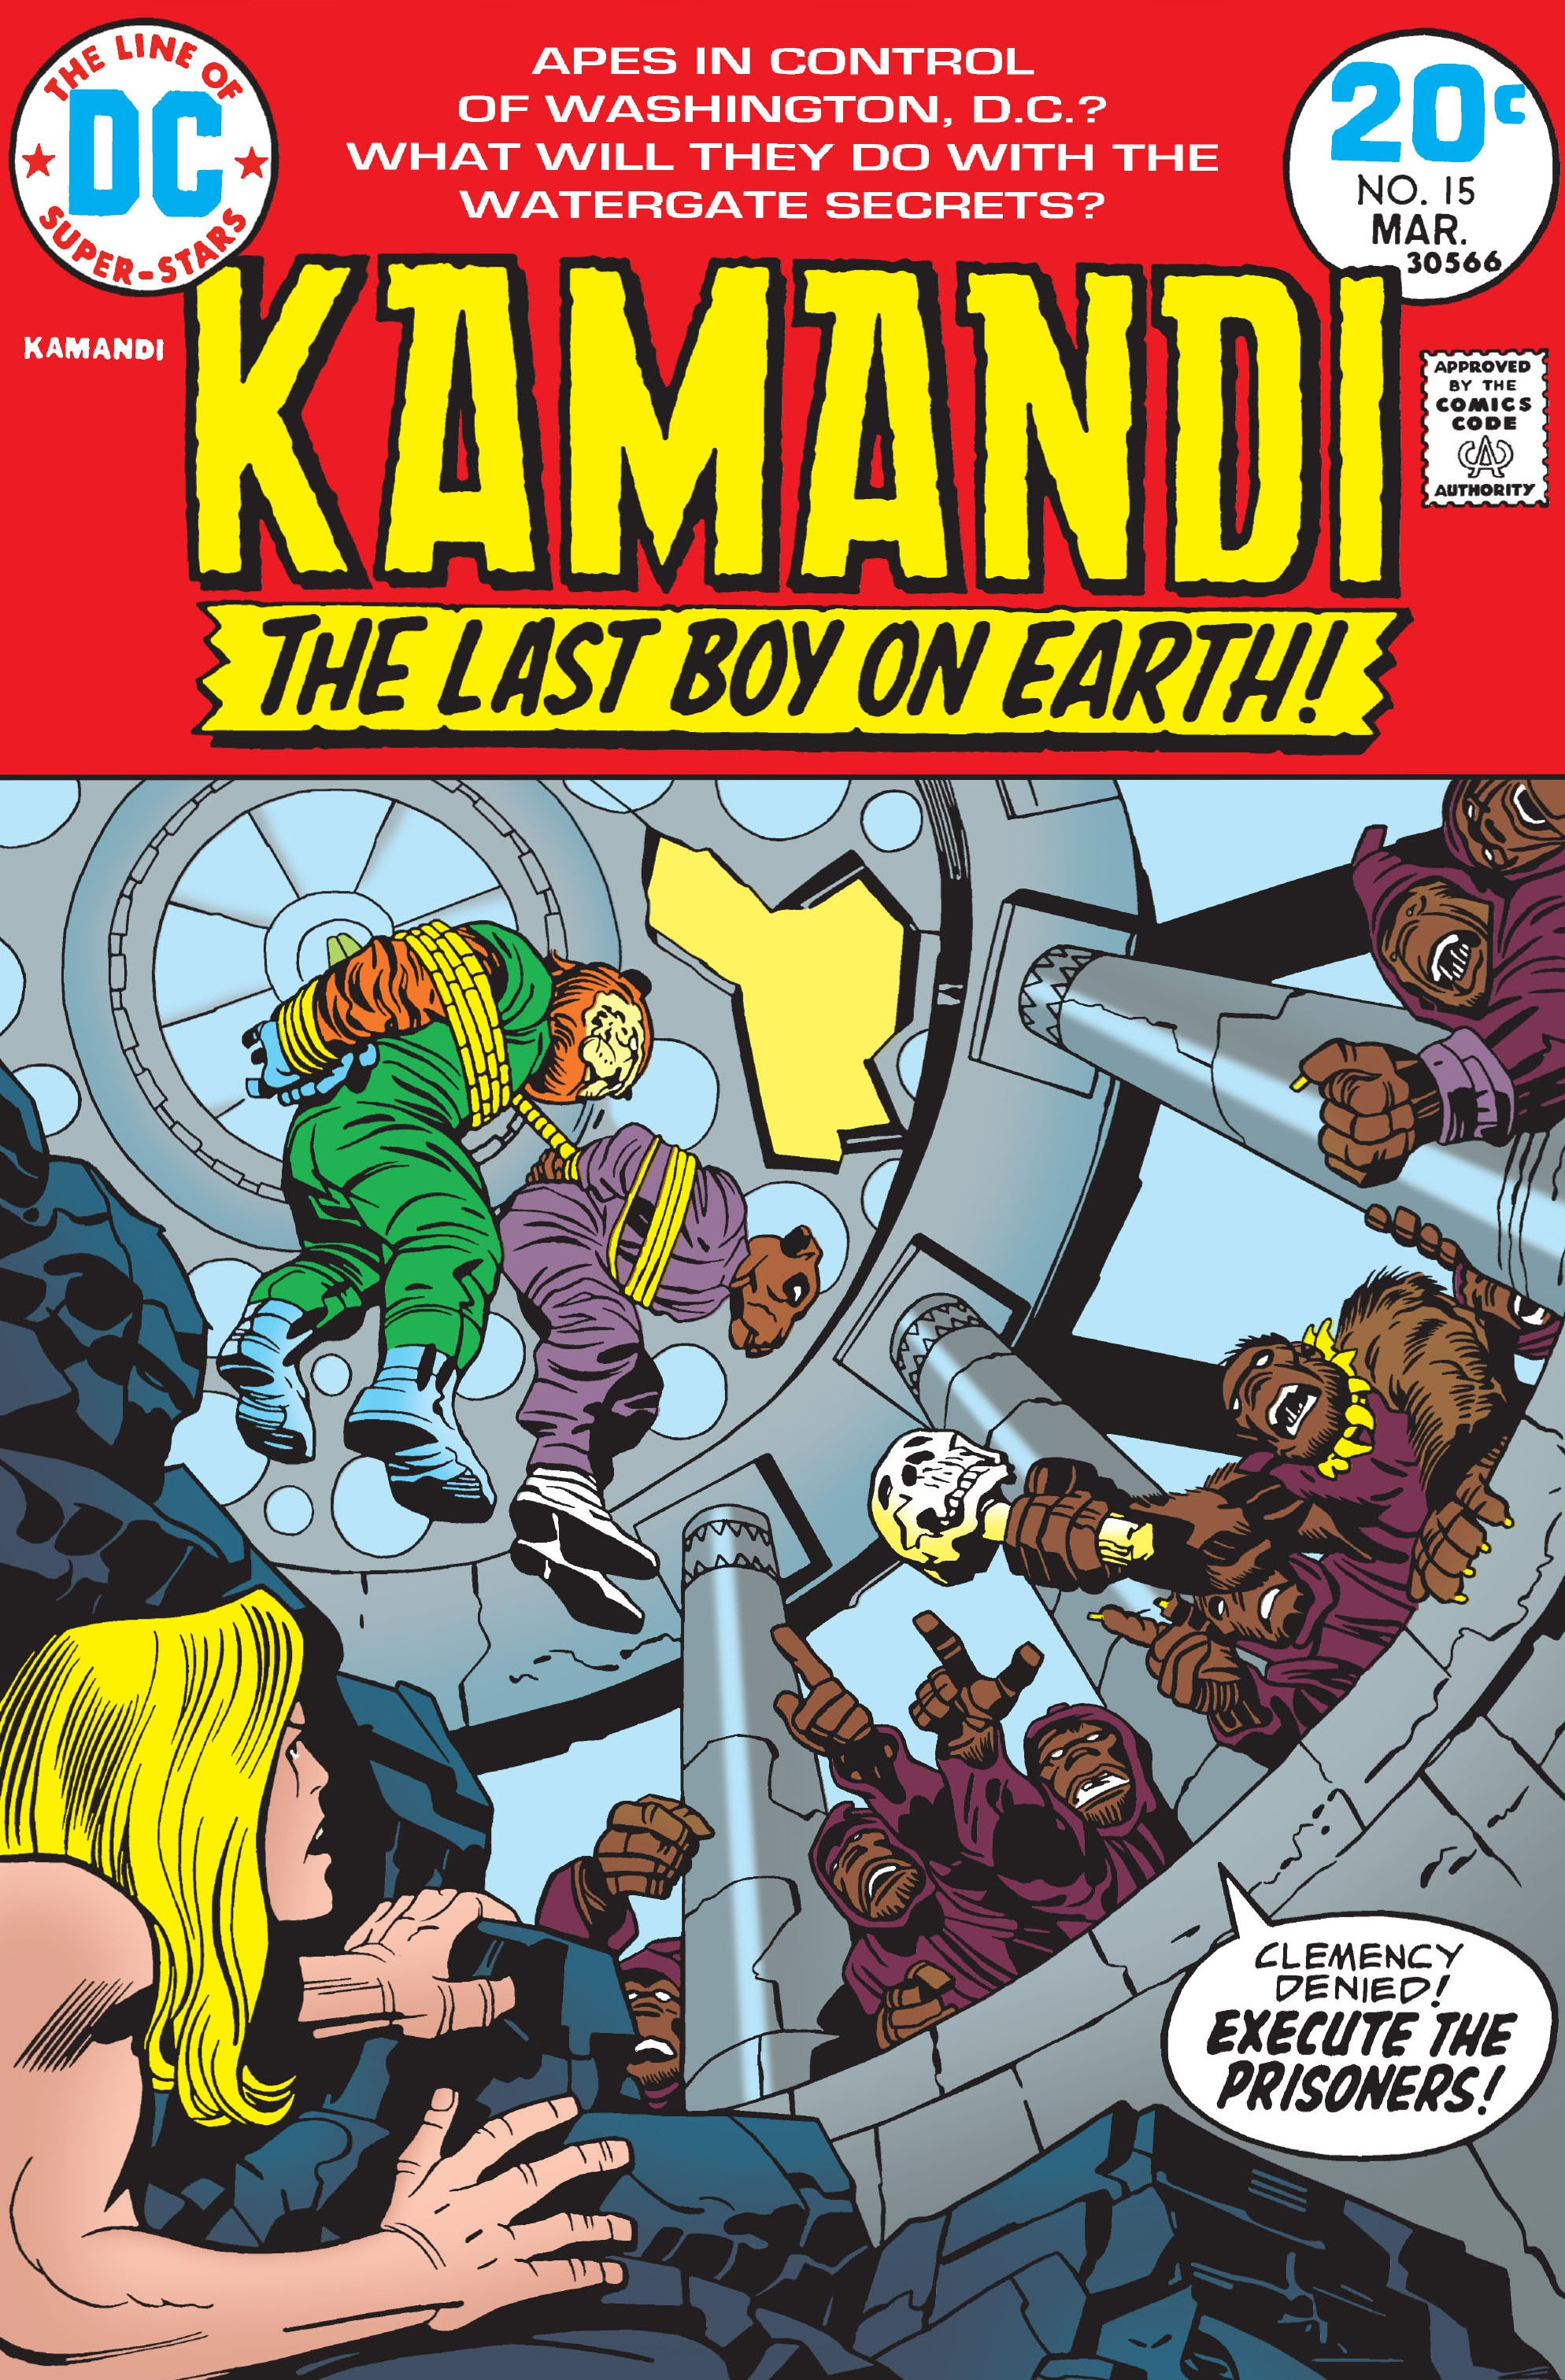 Kamandi (1972) #15, cover penciled by Jack Kirby & inked by Mike Royer.